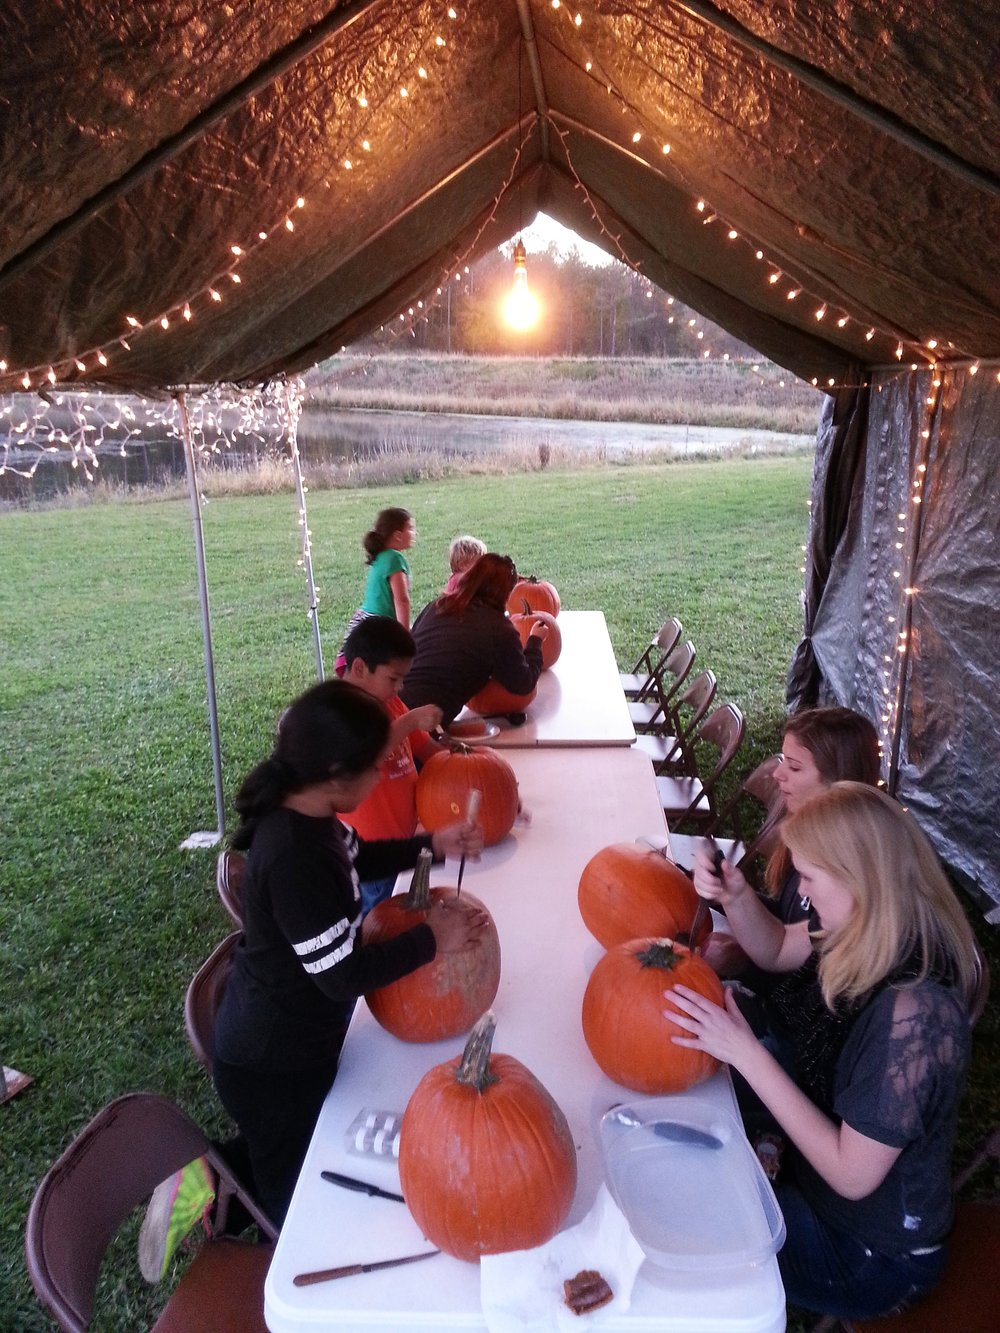 Carving pumpkins! Before it got messy...